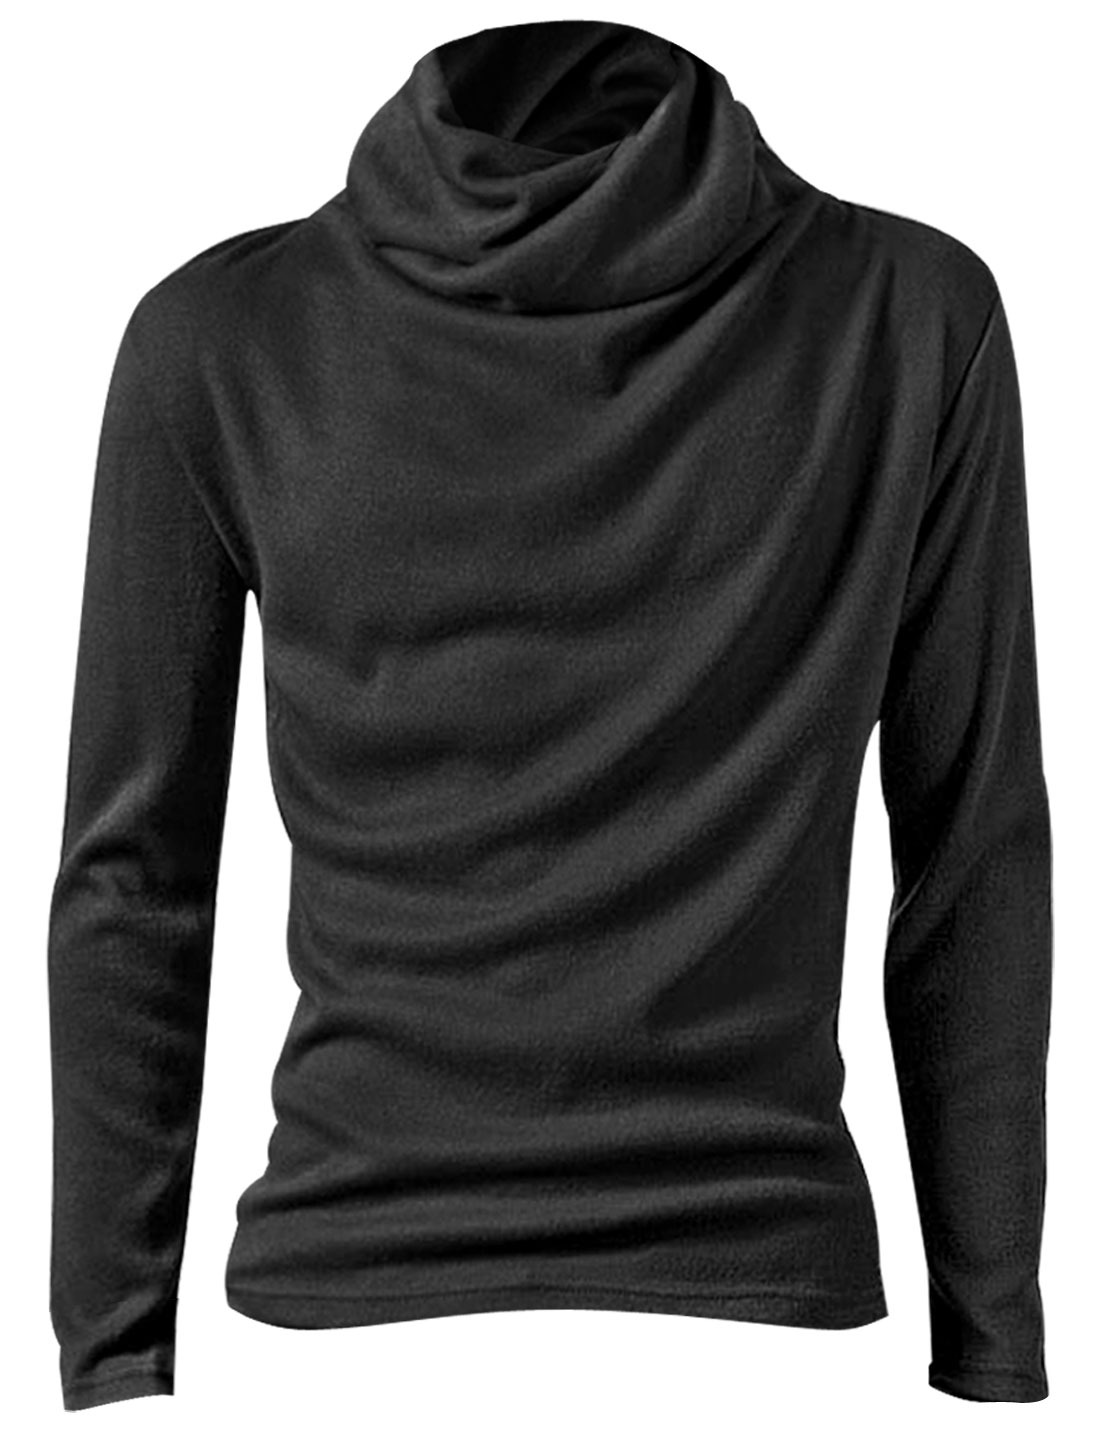 Men Dark Gray Long Sleeve Autumn Leisure Fit Top Shirt